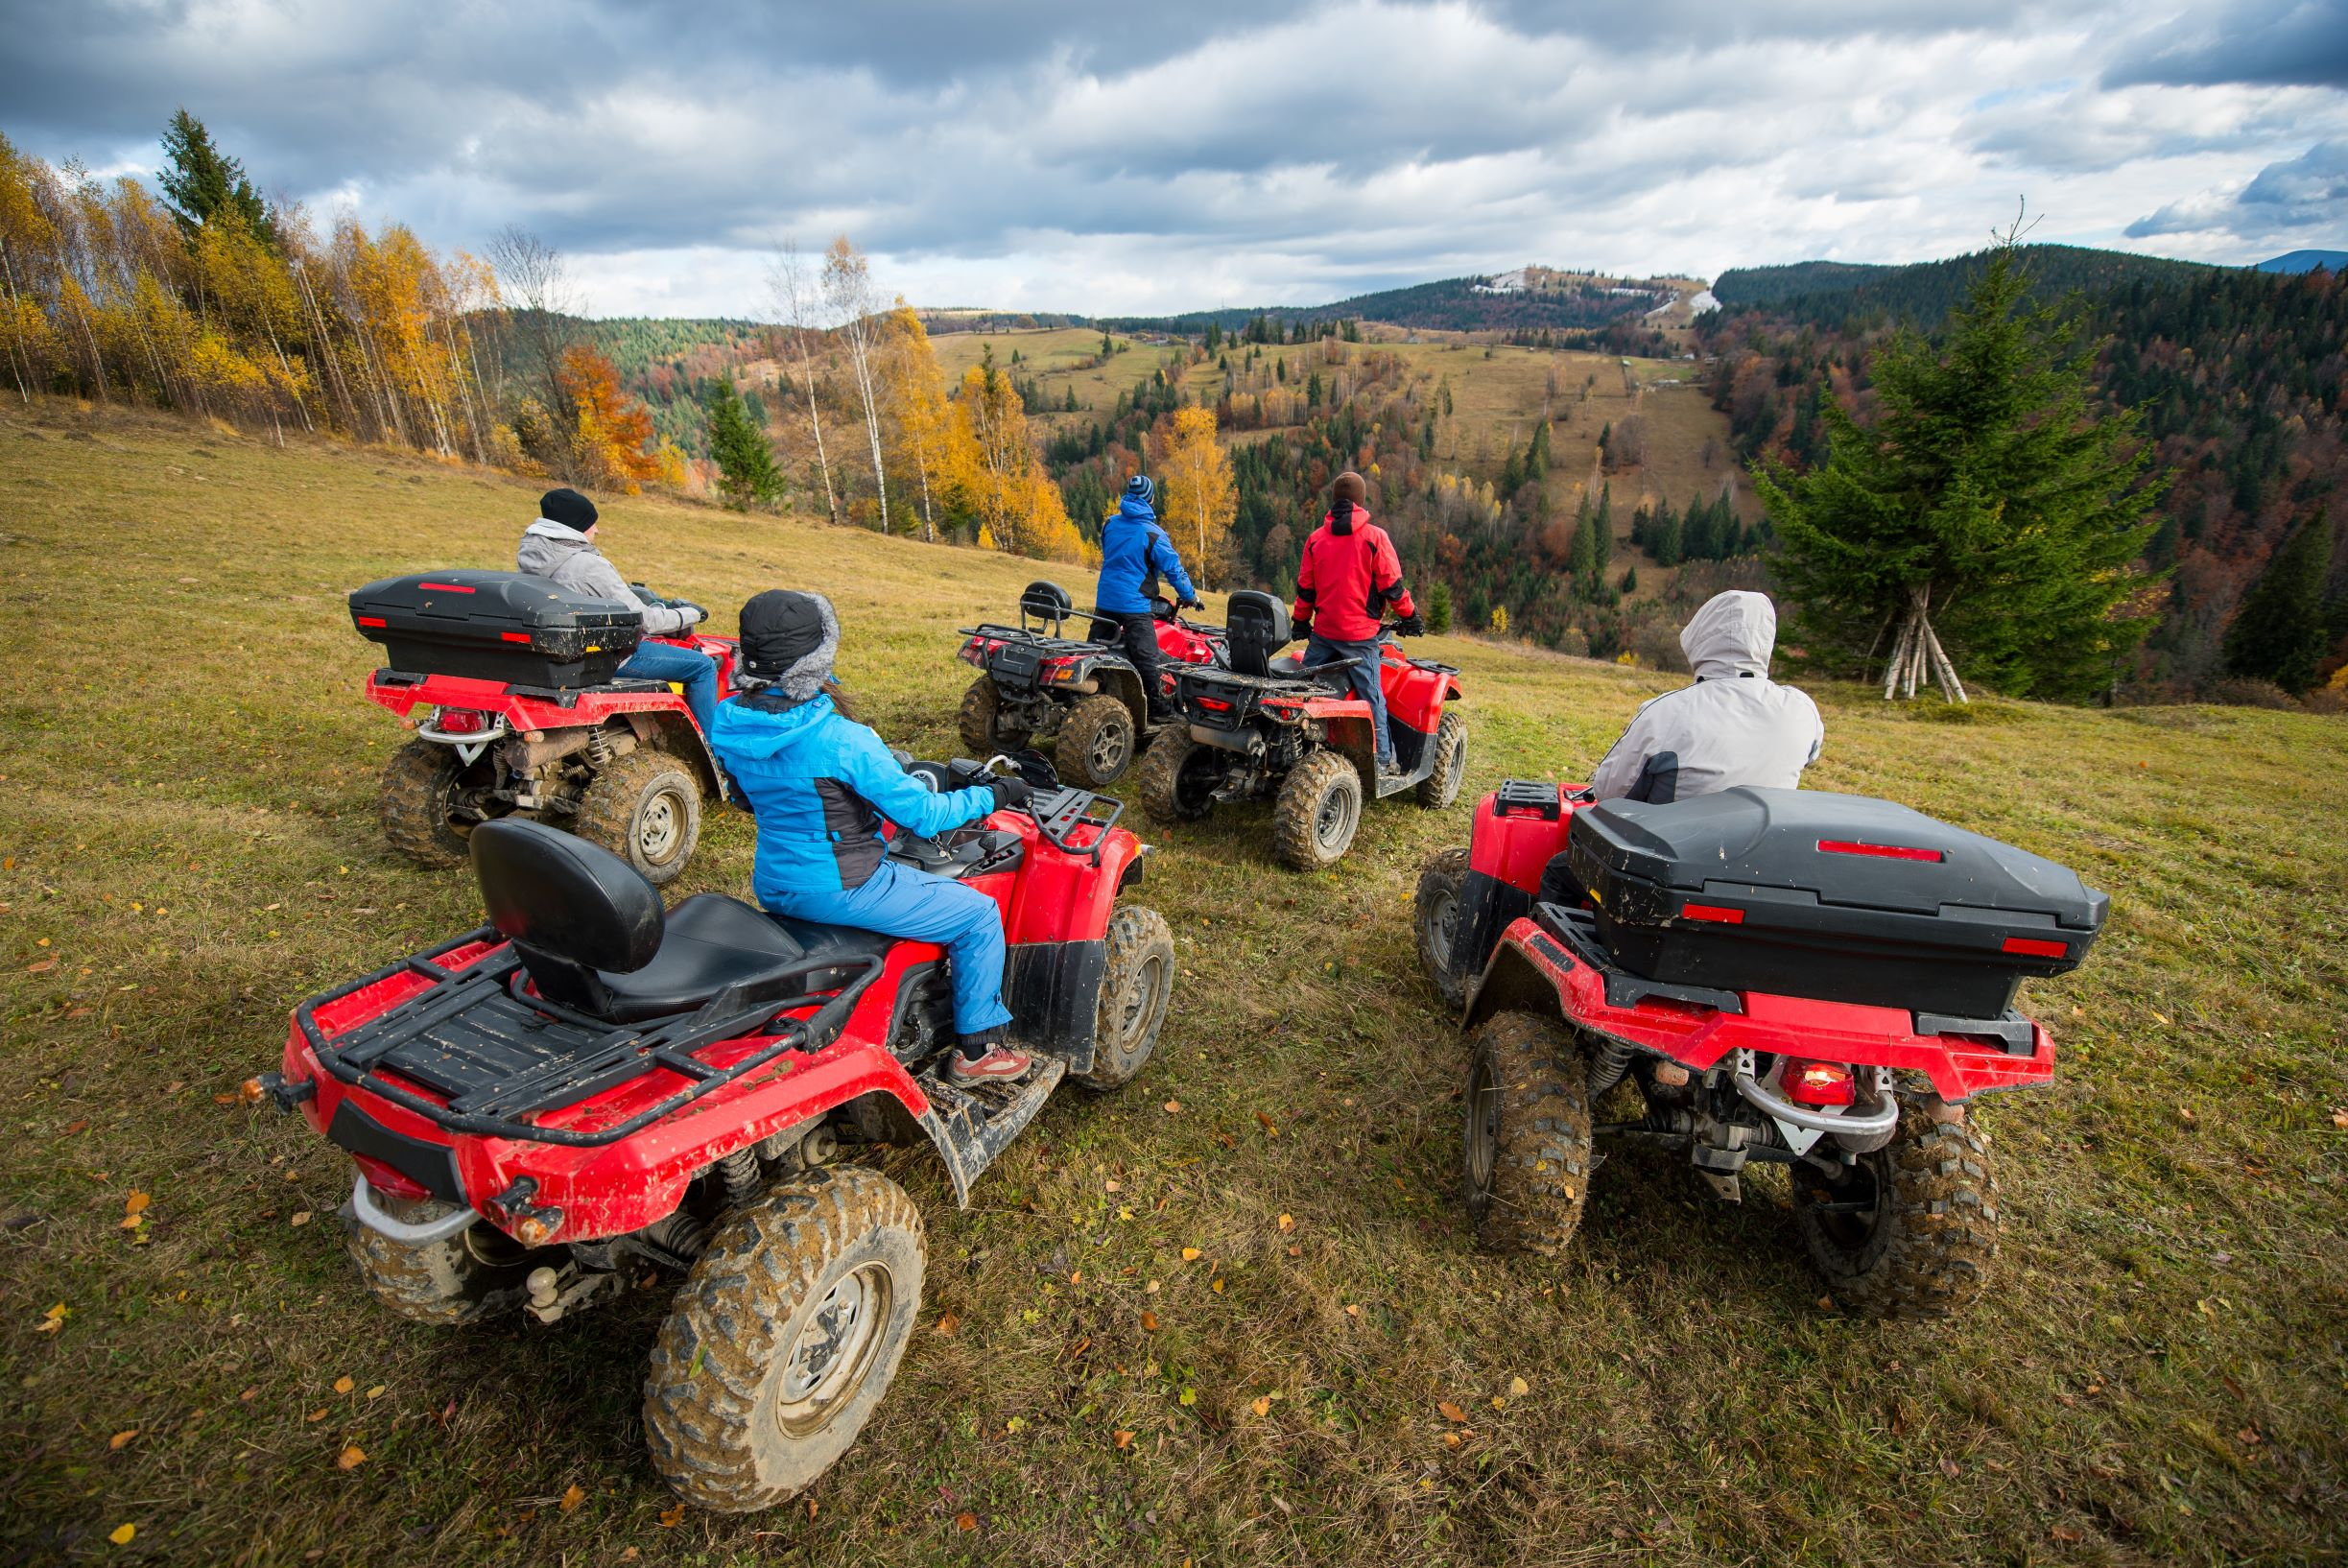 ATV Adventures in Grand County, CO - Melinda Lee LIV Sothebys